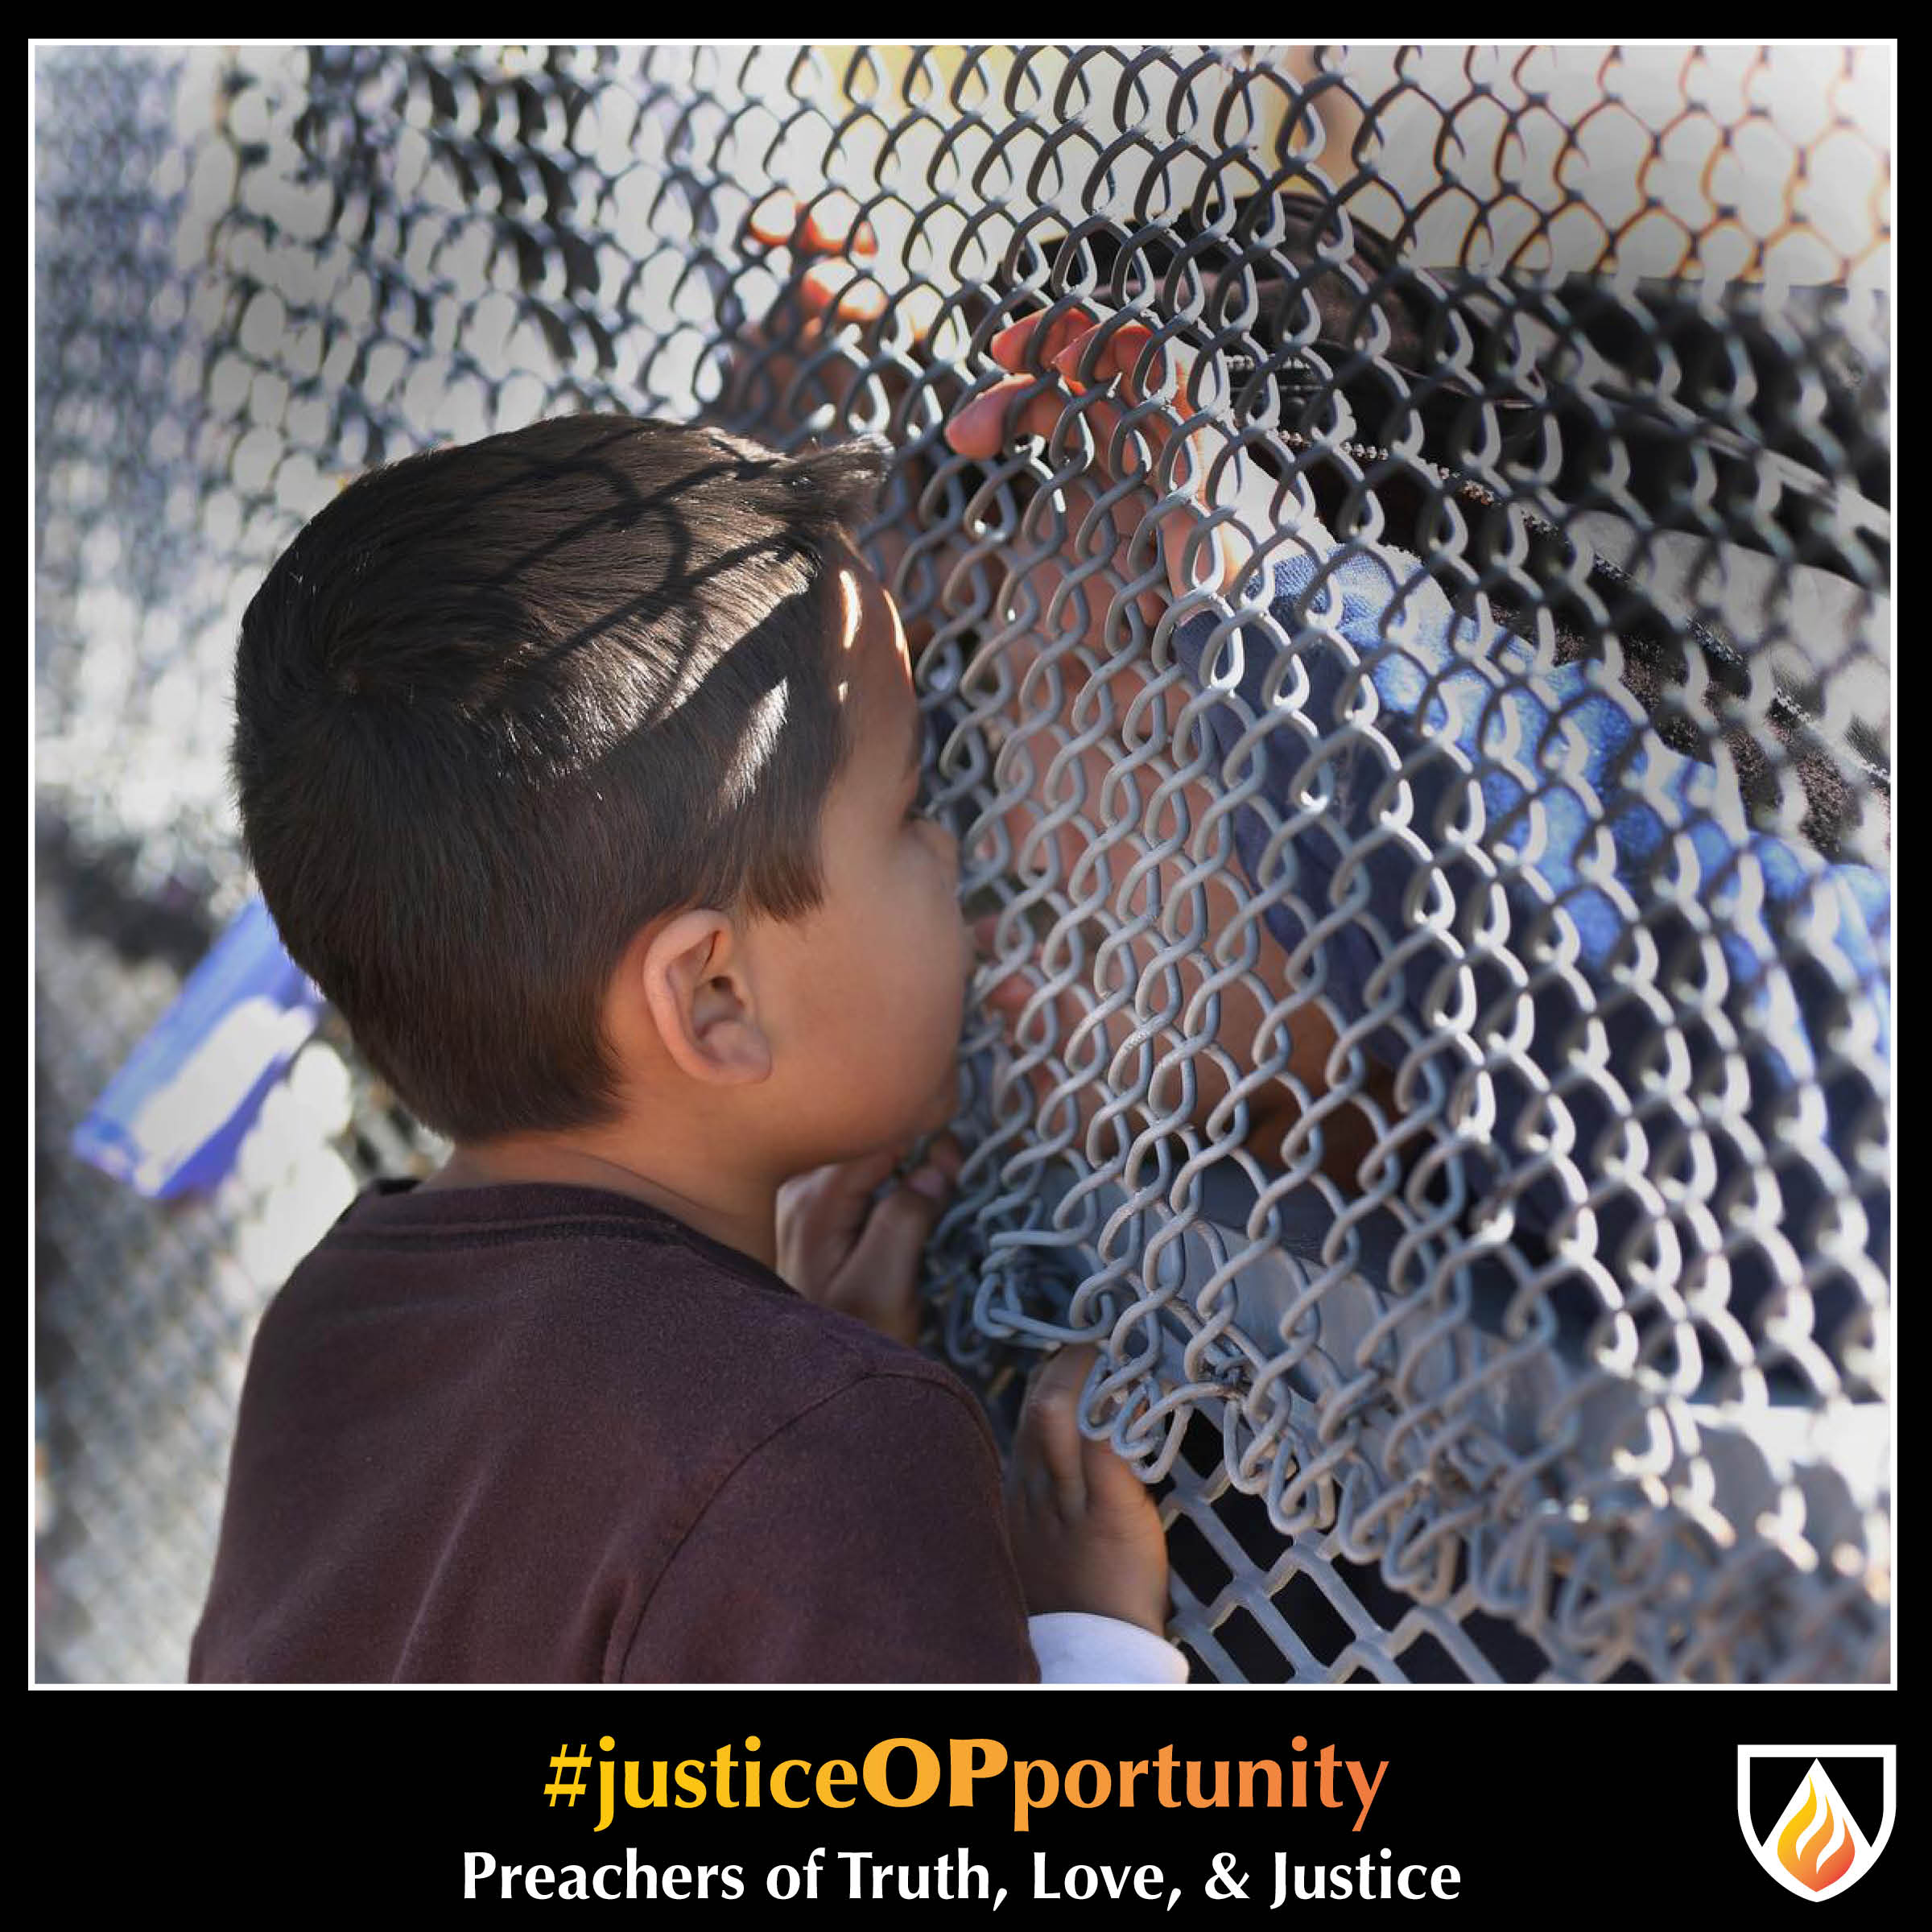 #justiceOPportunity Thursday: January 2, 2020